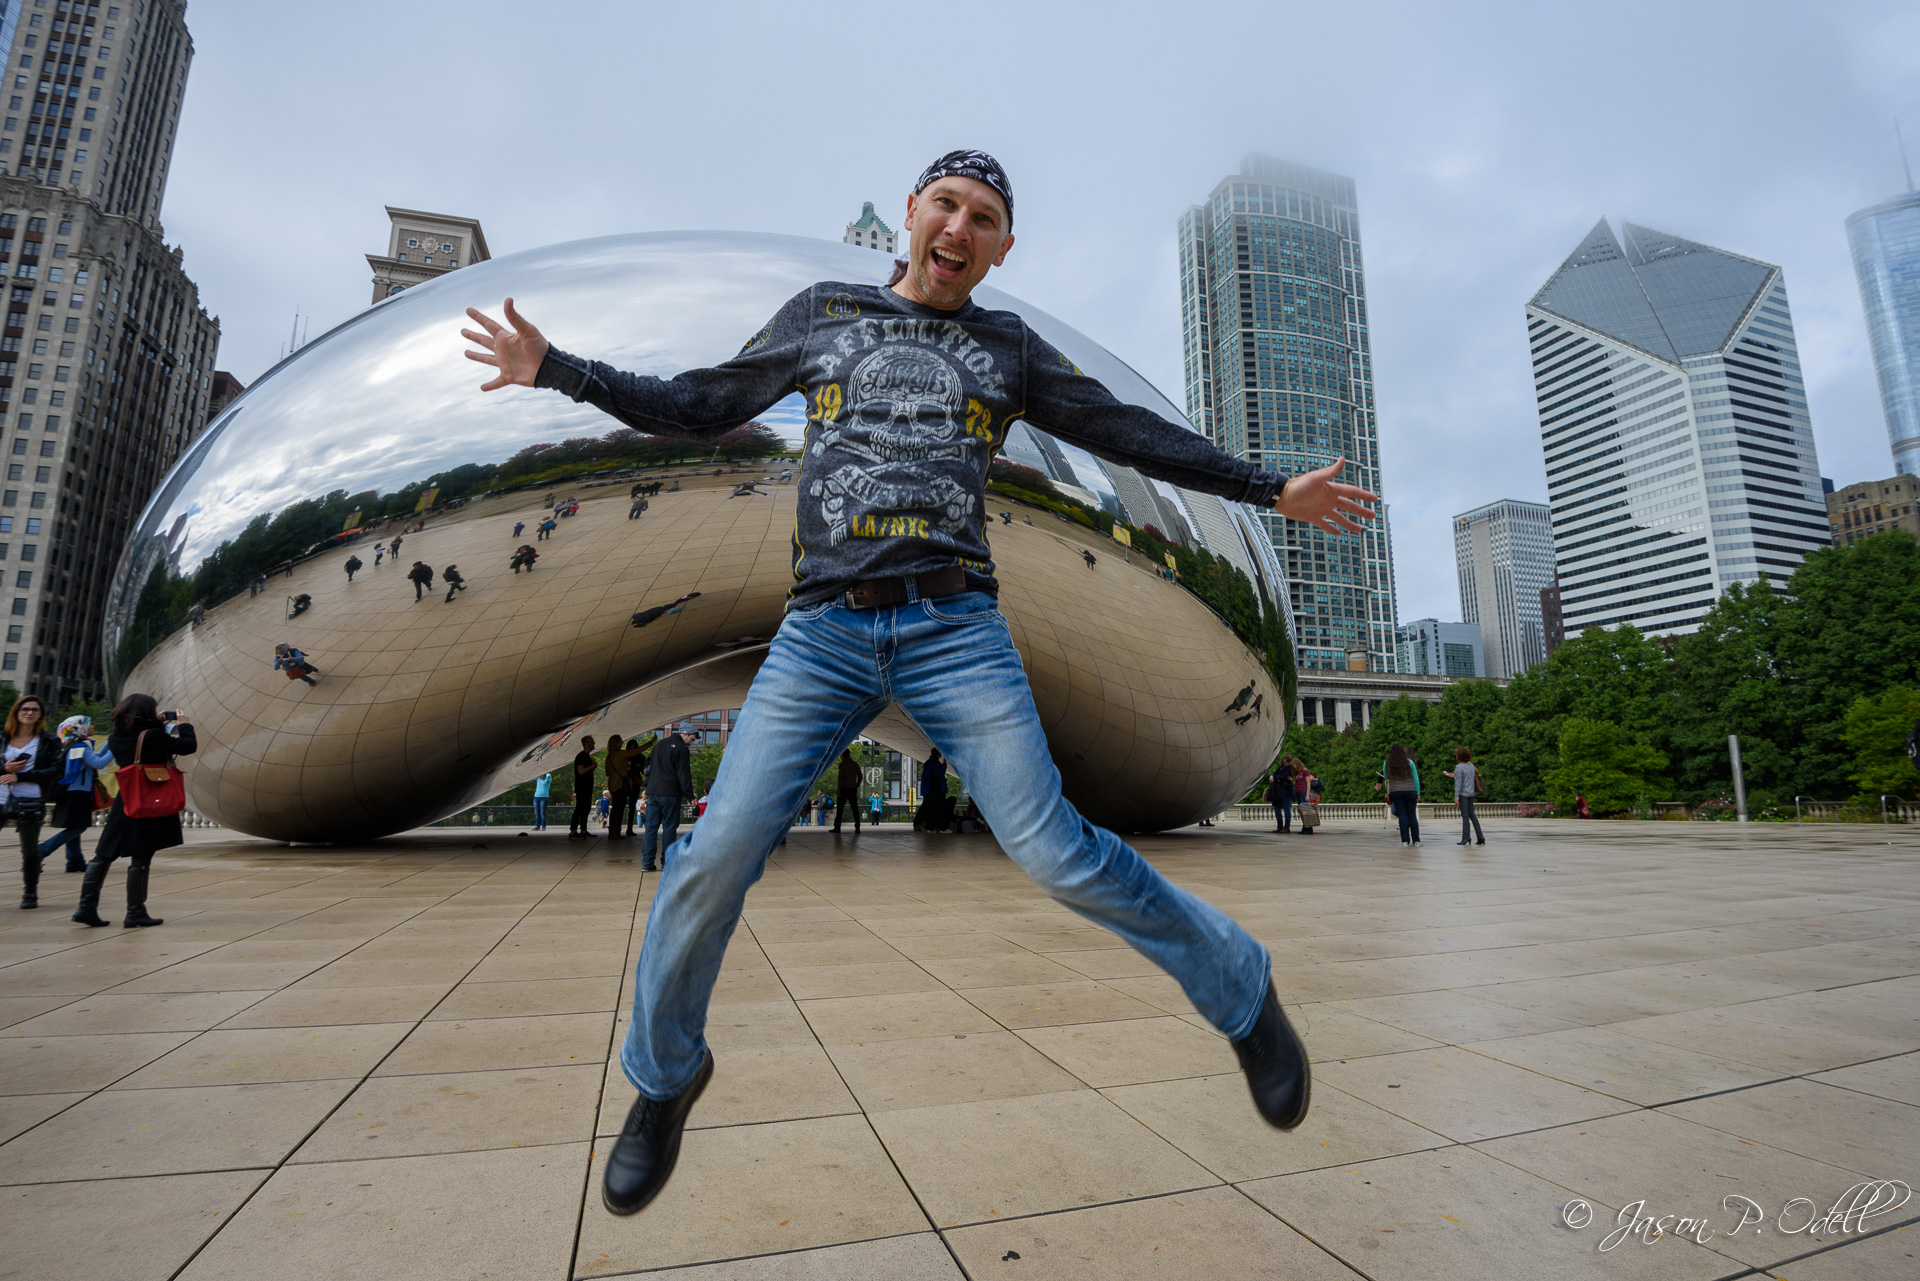 Jumping for joy at Cloud Gate, Chicago, IL.